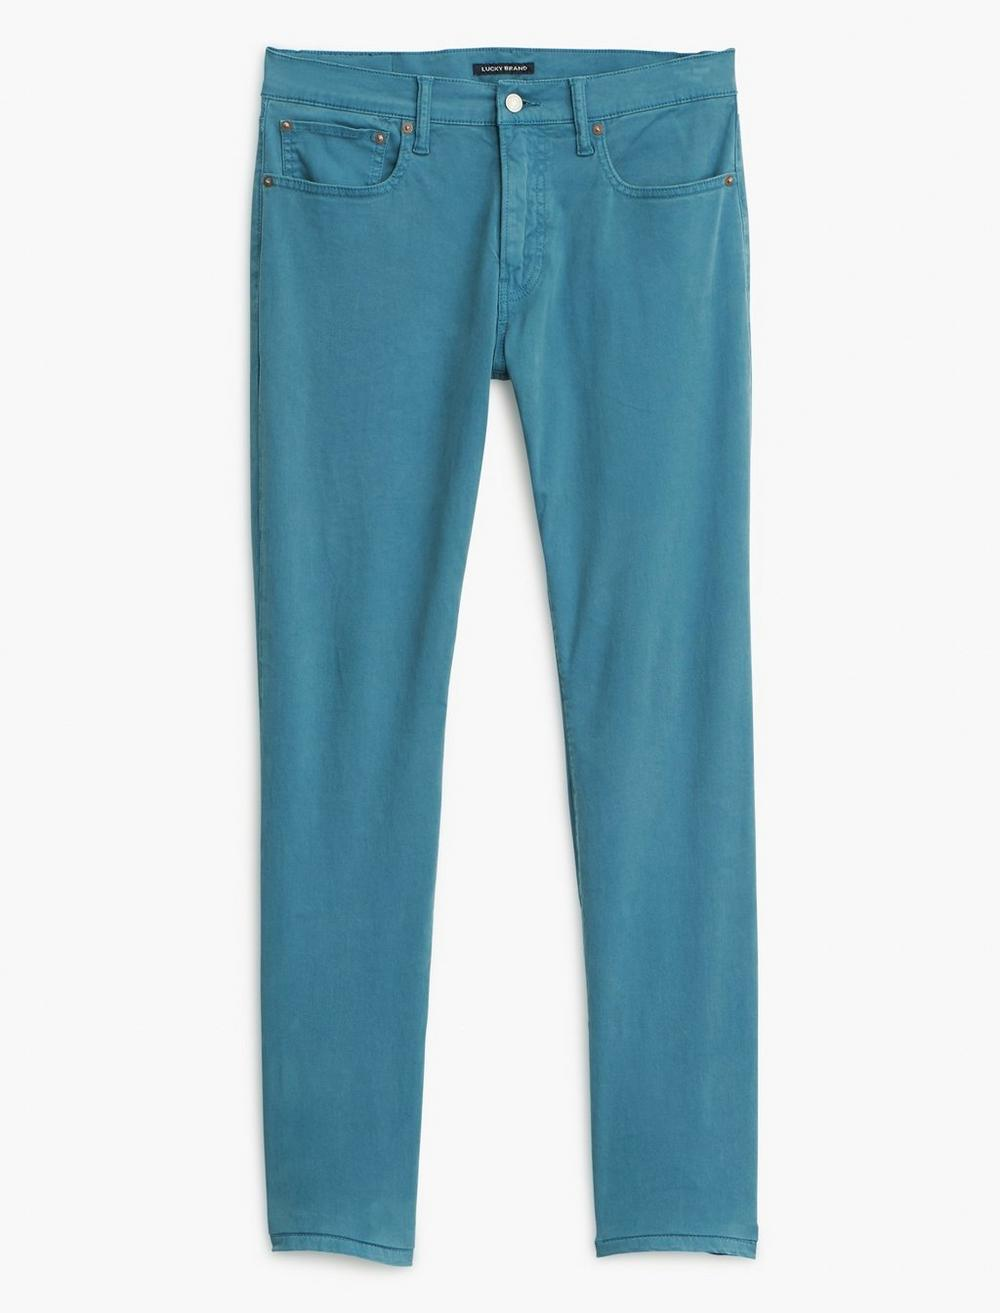 223 STRAIGHT SATEEN STRETCH JEAN, image 7